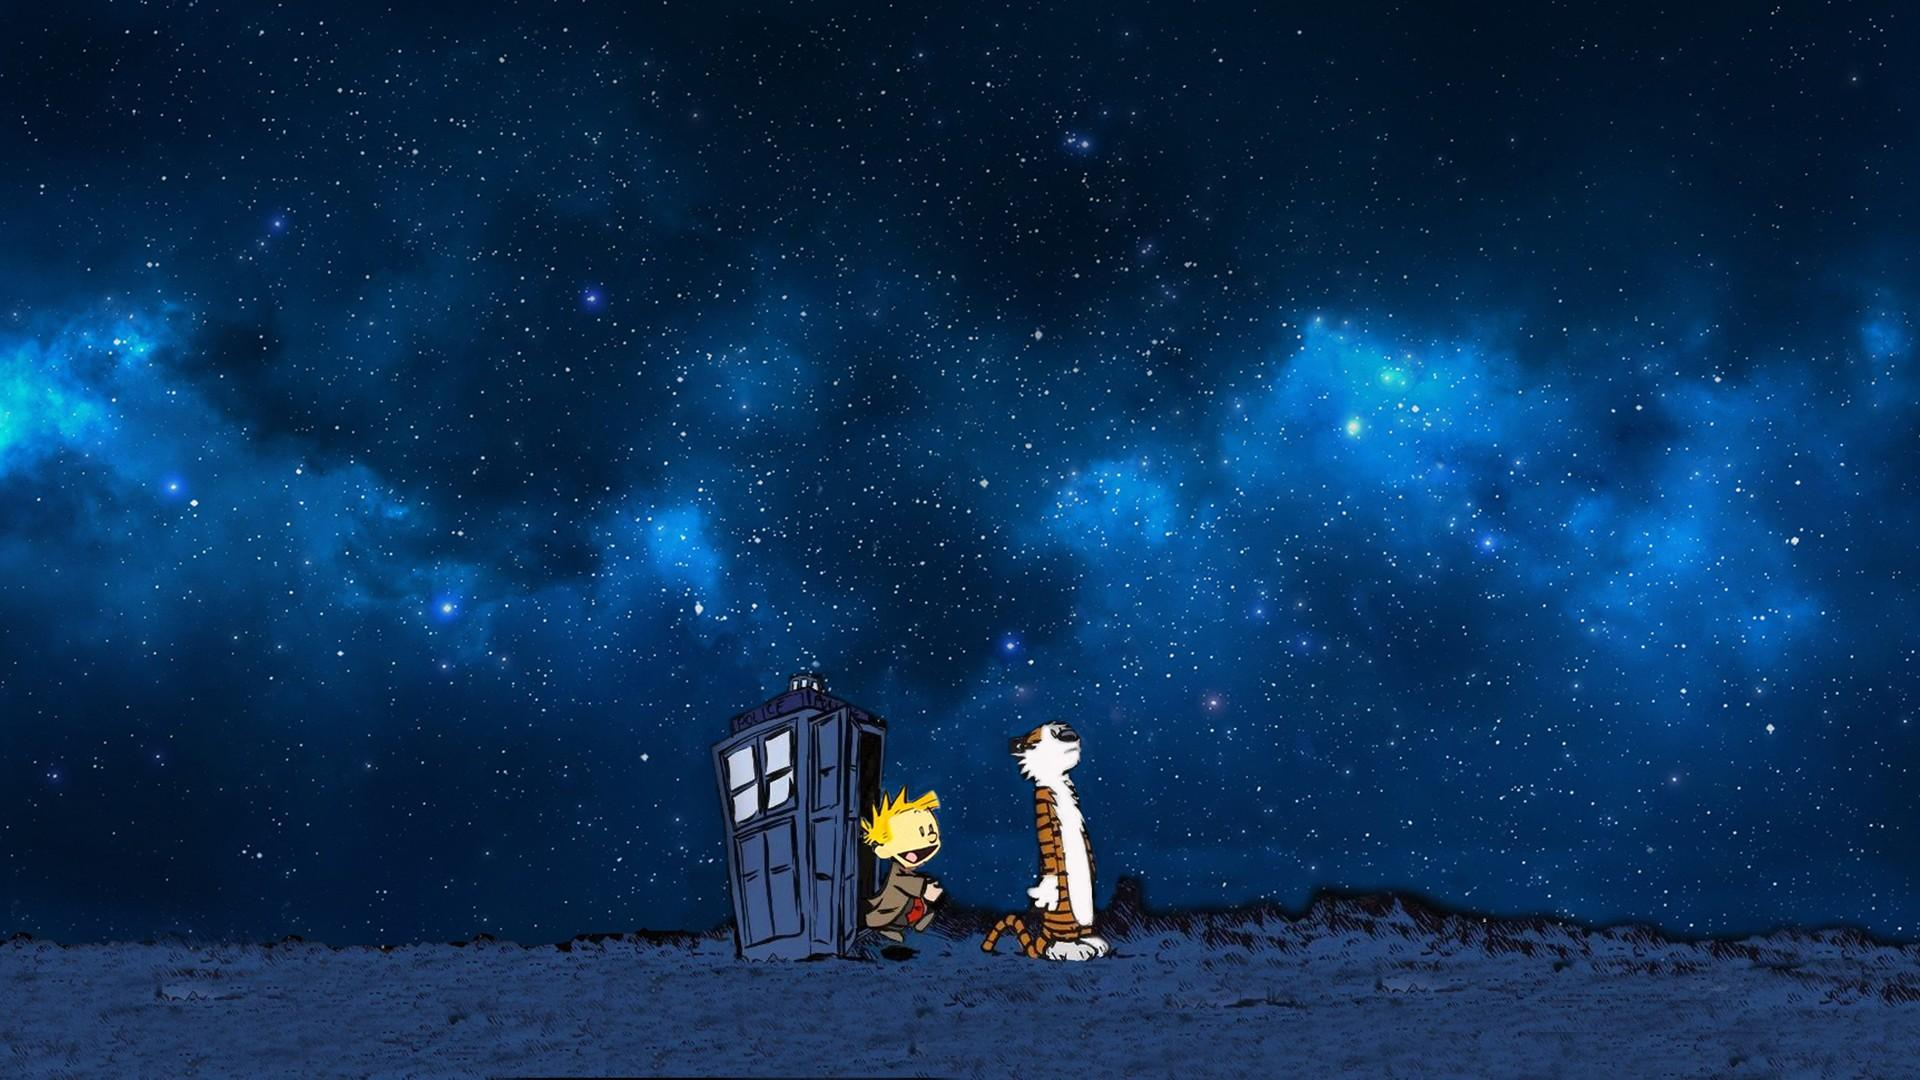 Download Calvin And Hobbes Wallpaper Hd Backgrounds